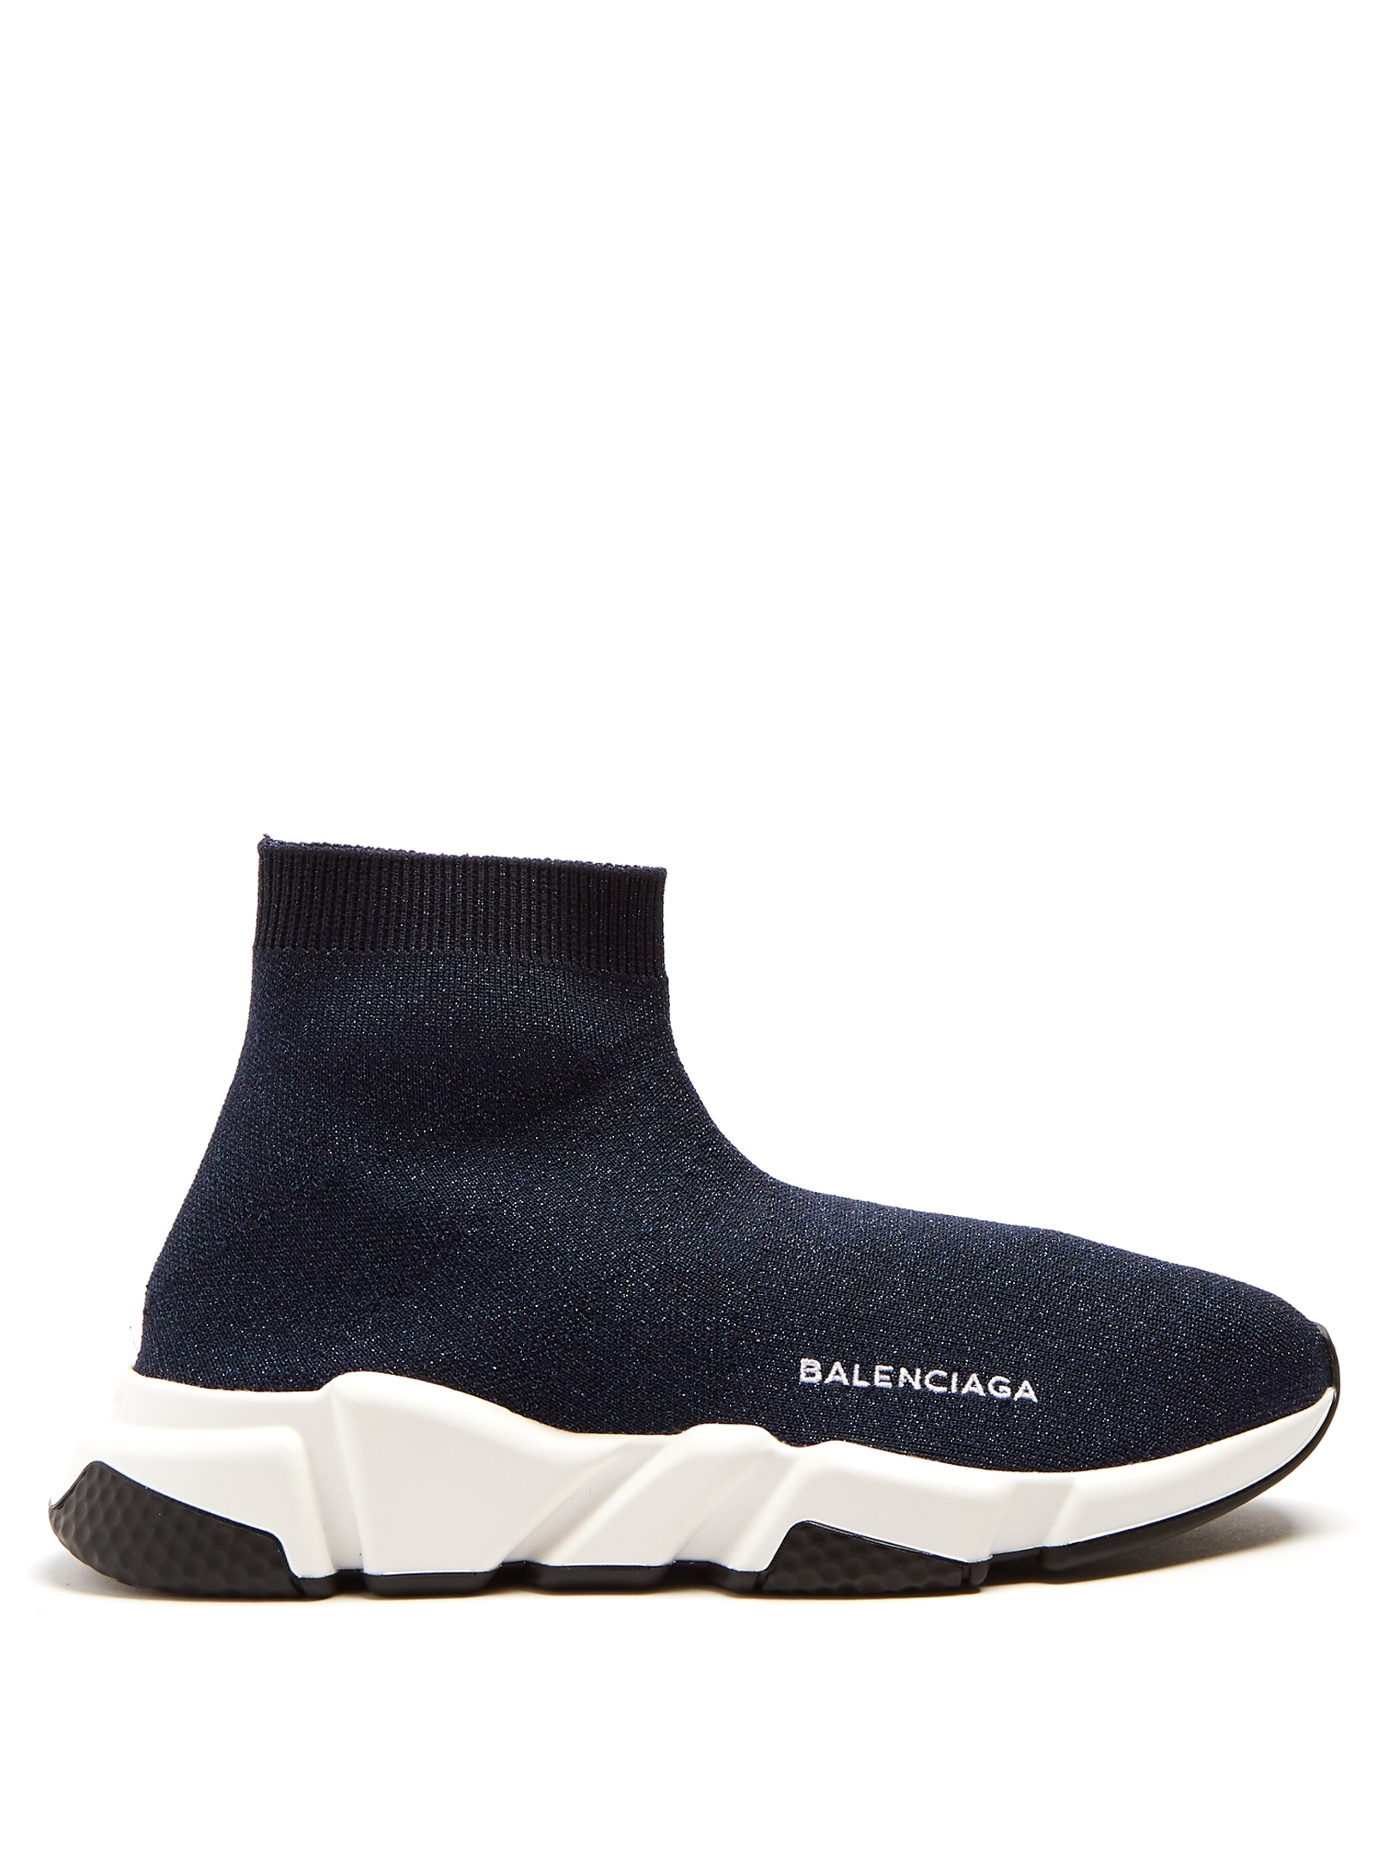 Ranked the second most searched for product of 2017 was Balenciaga's Speed Trainers.